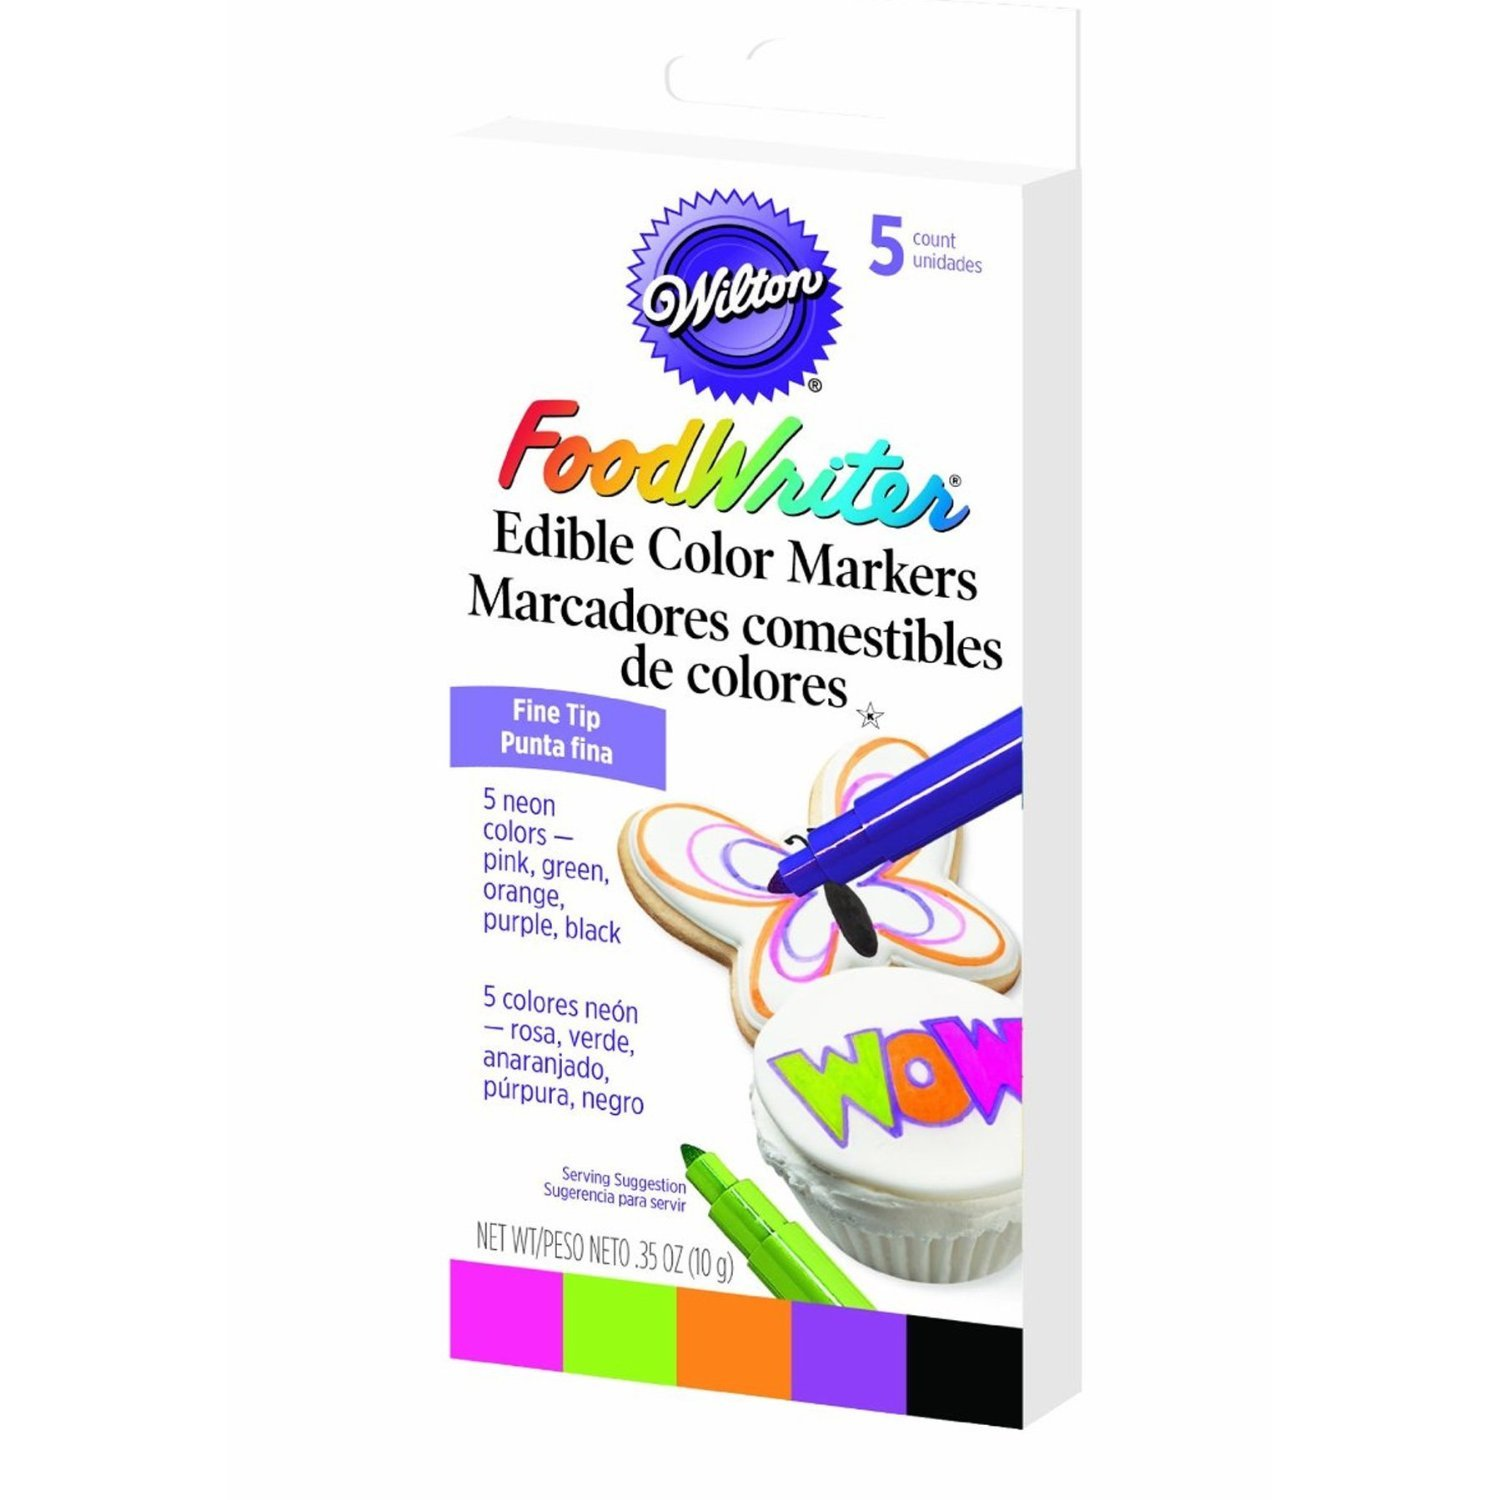 Wilton Food Writer Edible Fine Tip Neon Color Markers 5 count by Wilton